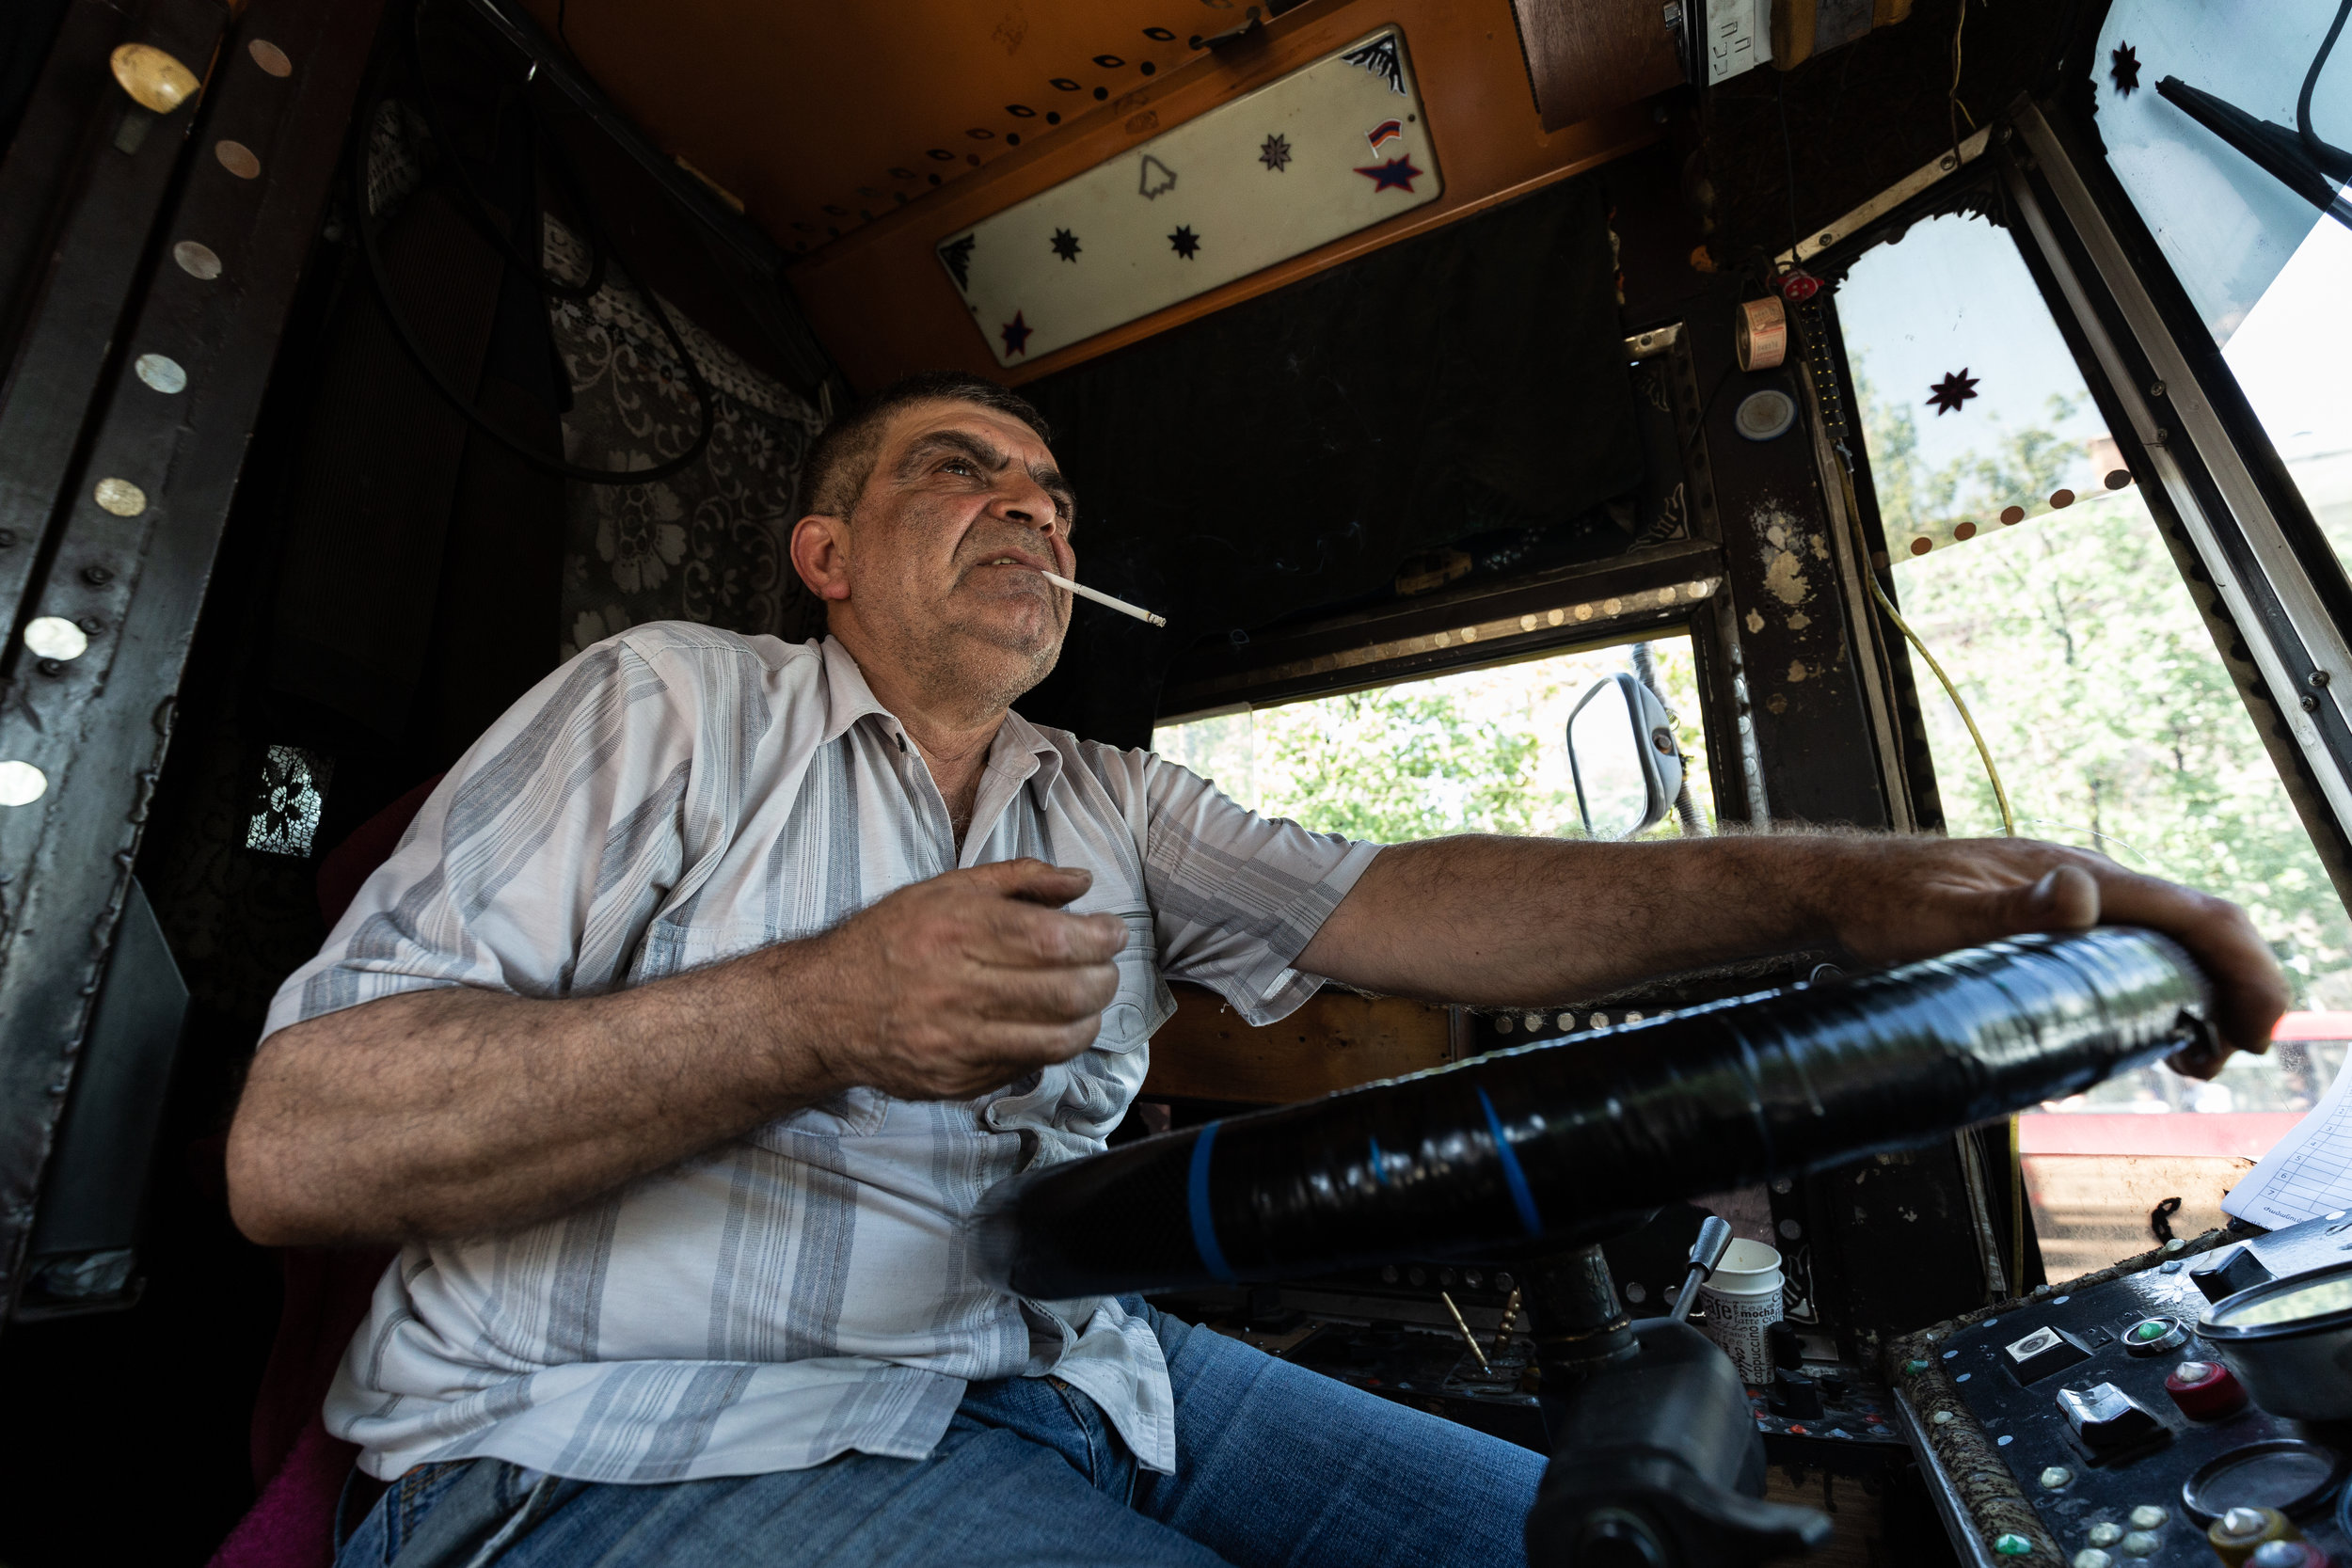 Arthur like all the other trolleybus drivers claim that the taxis and overcrowded Marshrutkas create the majority of the problems on the roads (especially in Prospect) because they don't respect the bus lanes/stops. He says that the young drivers can't understand the old ones well because they were not part of the old system when the buses first started in Yerevan. In the past new drivers had to take part in training that lasted for a total of 6 months, however today training is only 40 days broken down into three classes with 2 tests at the end.